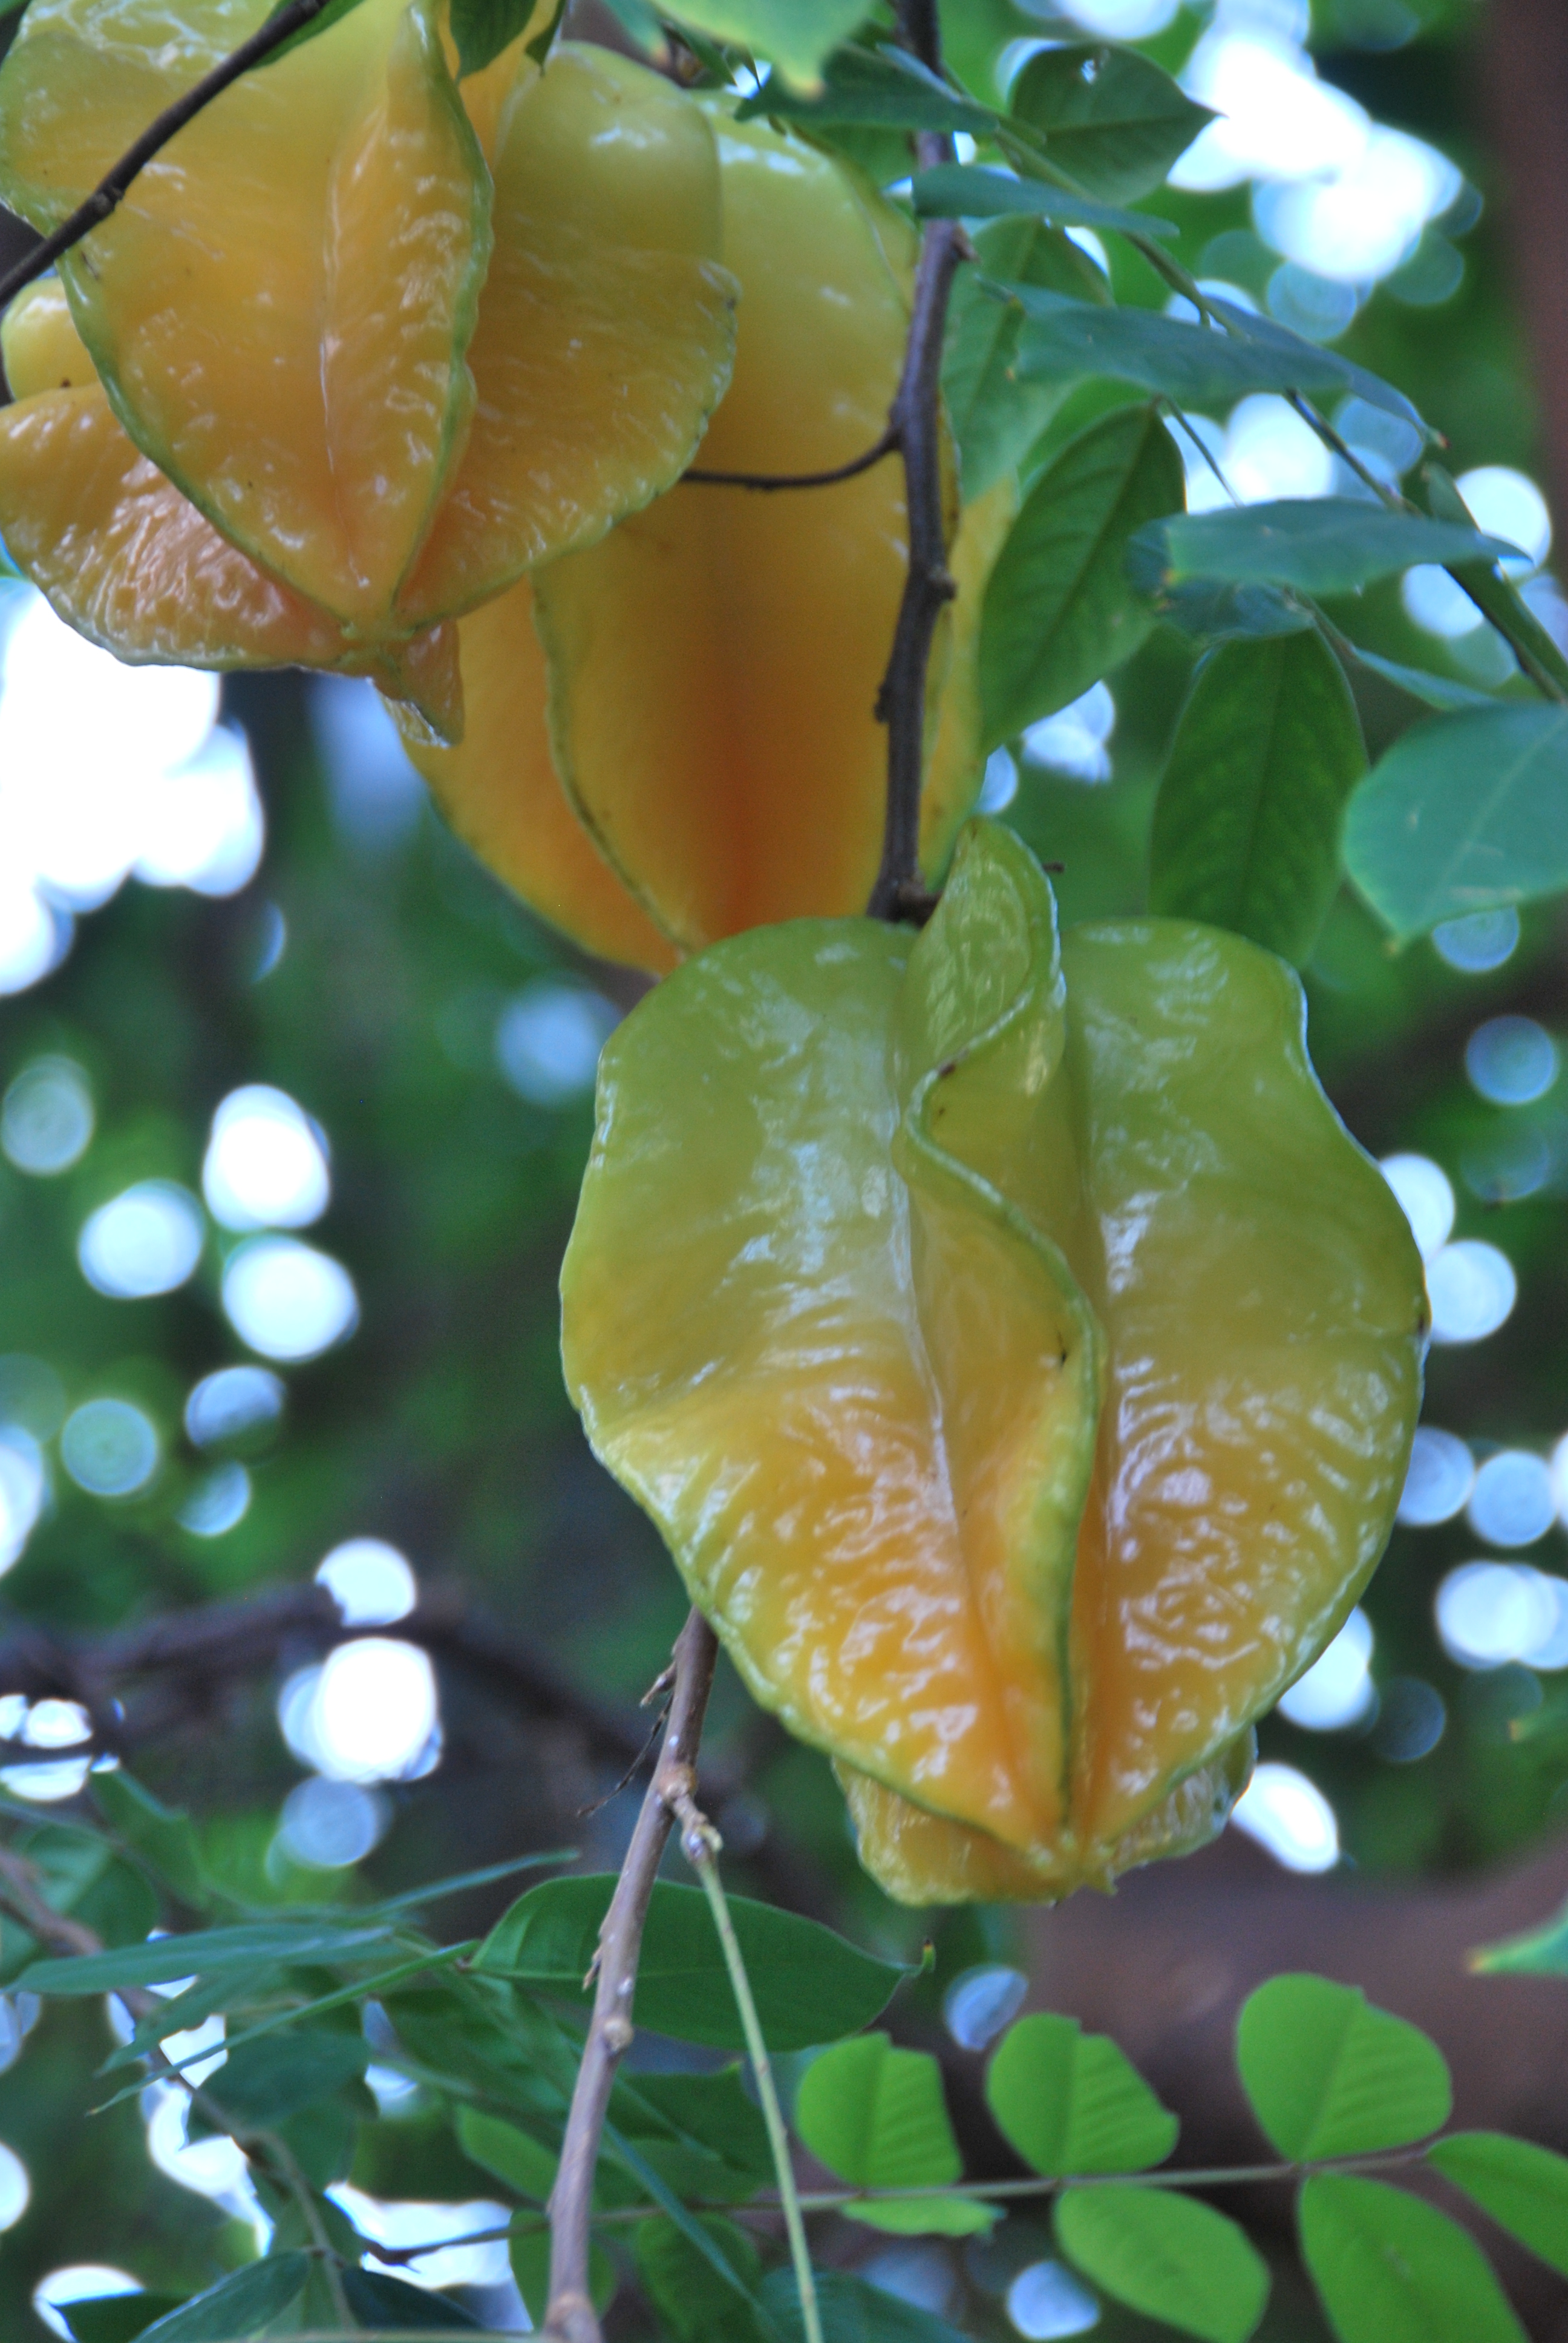 Best 12 Fruits Name With Pictures In English